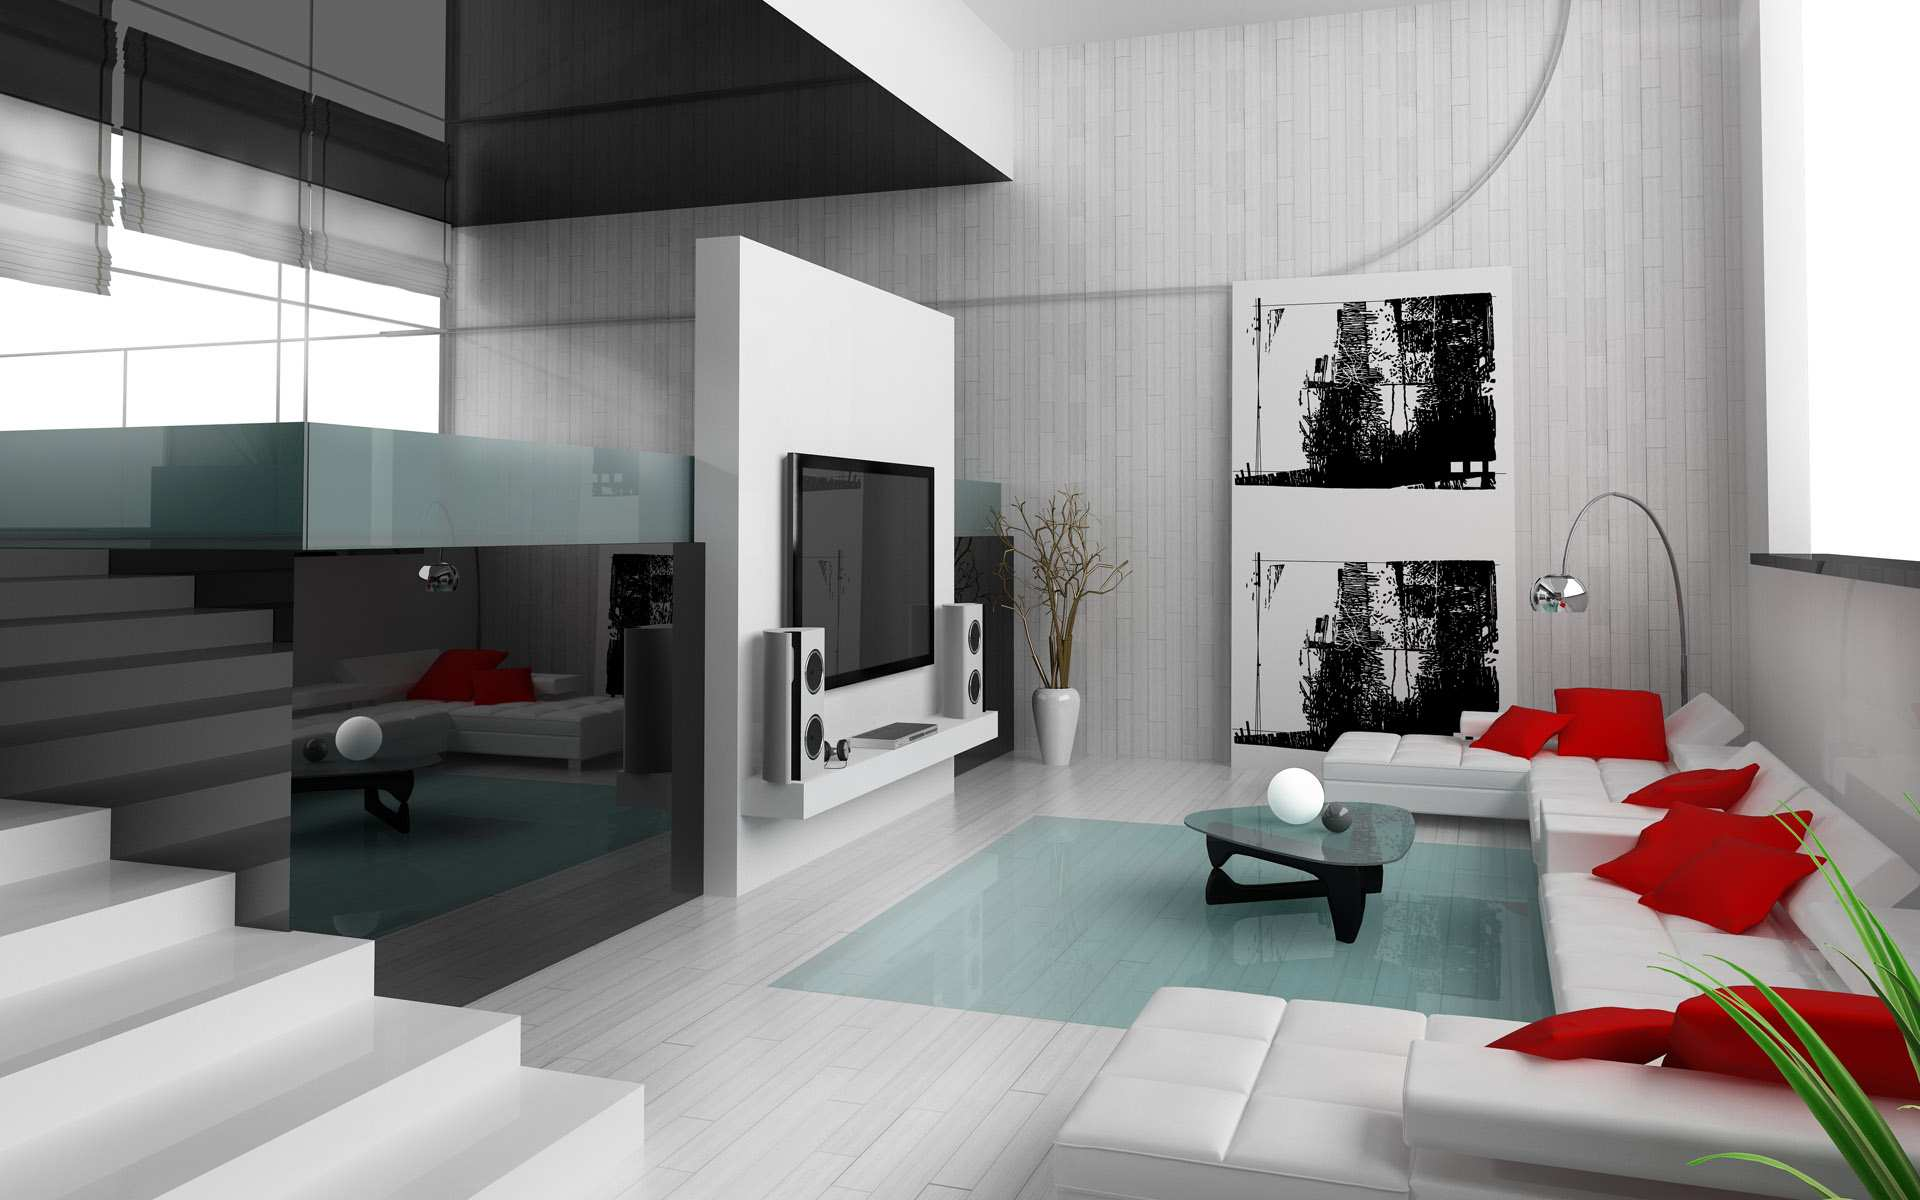 Elegant Black and White Interior Design Concept Sambeng Home Interior with Modern  Interior modern interior design concept